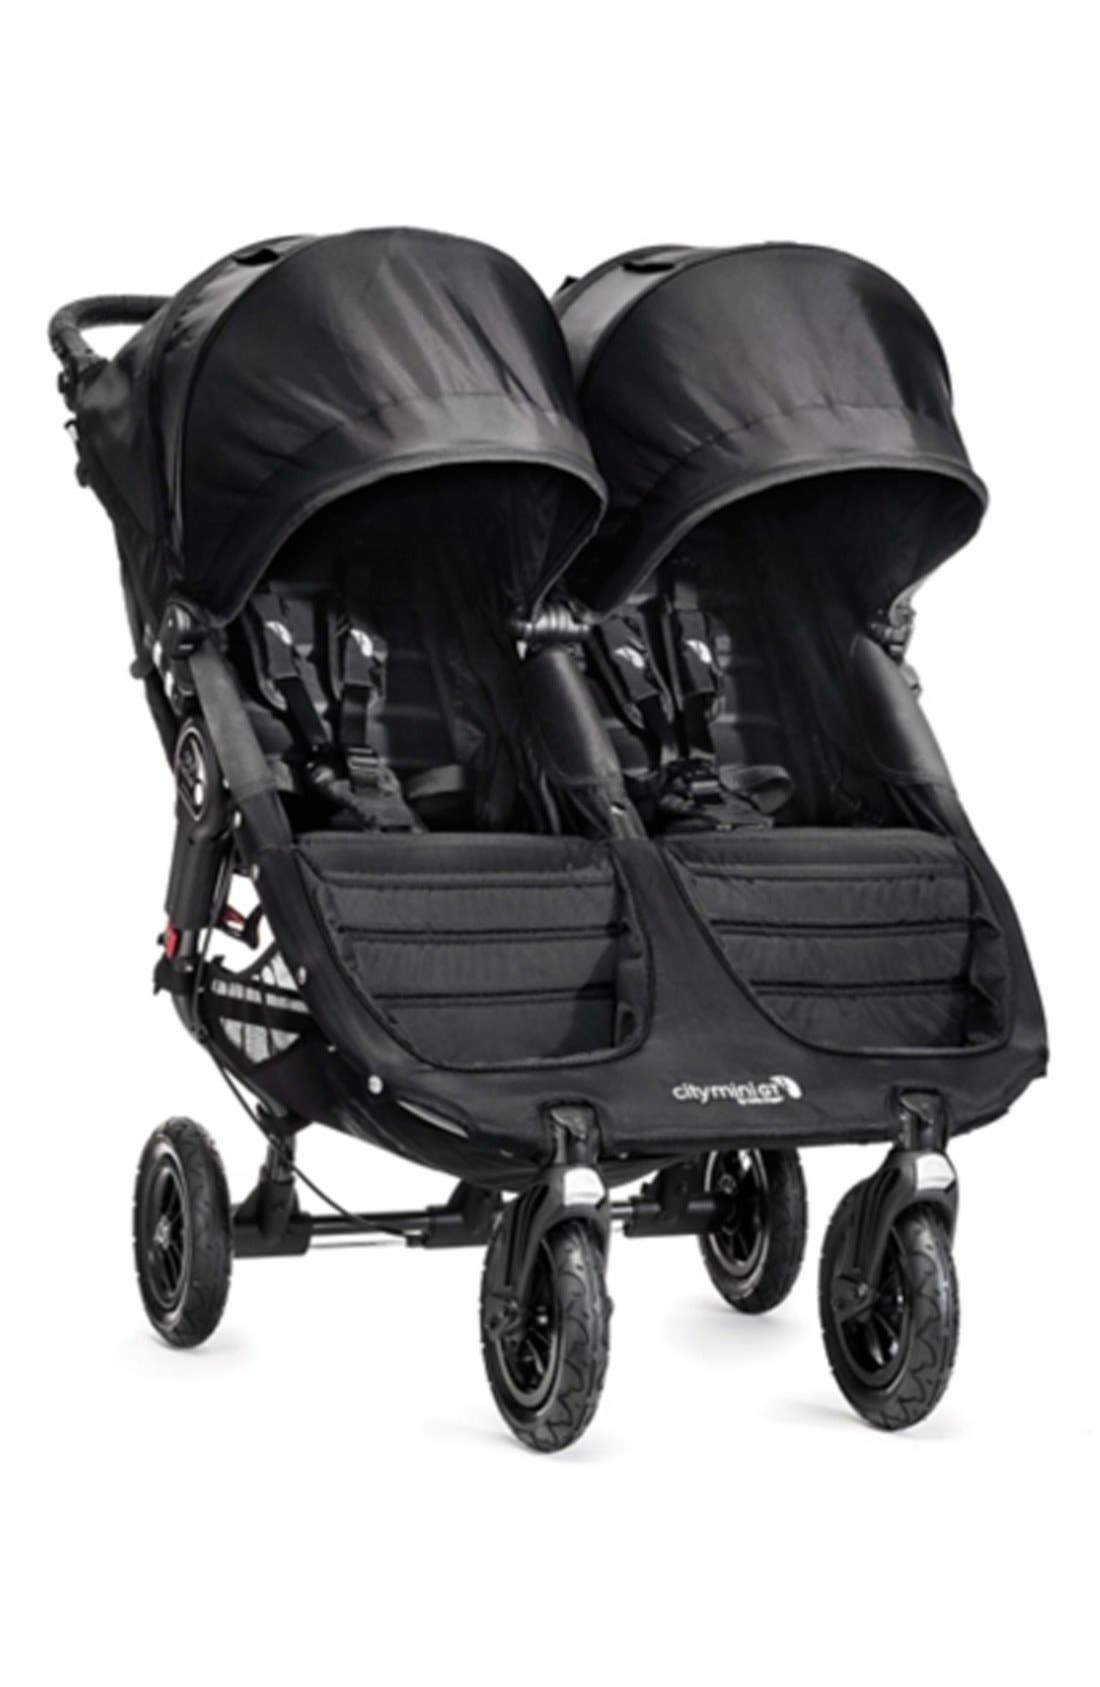 Perhaps the most ingenious feature of all Baby Jogger strollers is the fact that they are designed to accommodate children from birth to toddlerhood in safety and secure comfort. With simple Baby Jogger accessories, strollers can easily accommodate car seats from a variety of manufacturers.